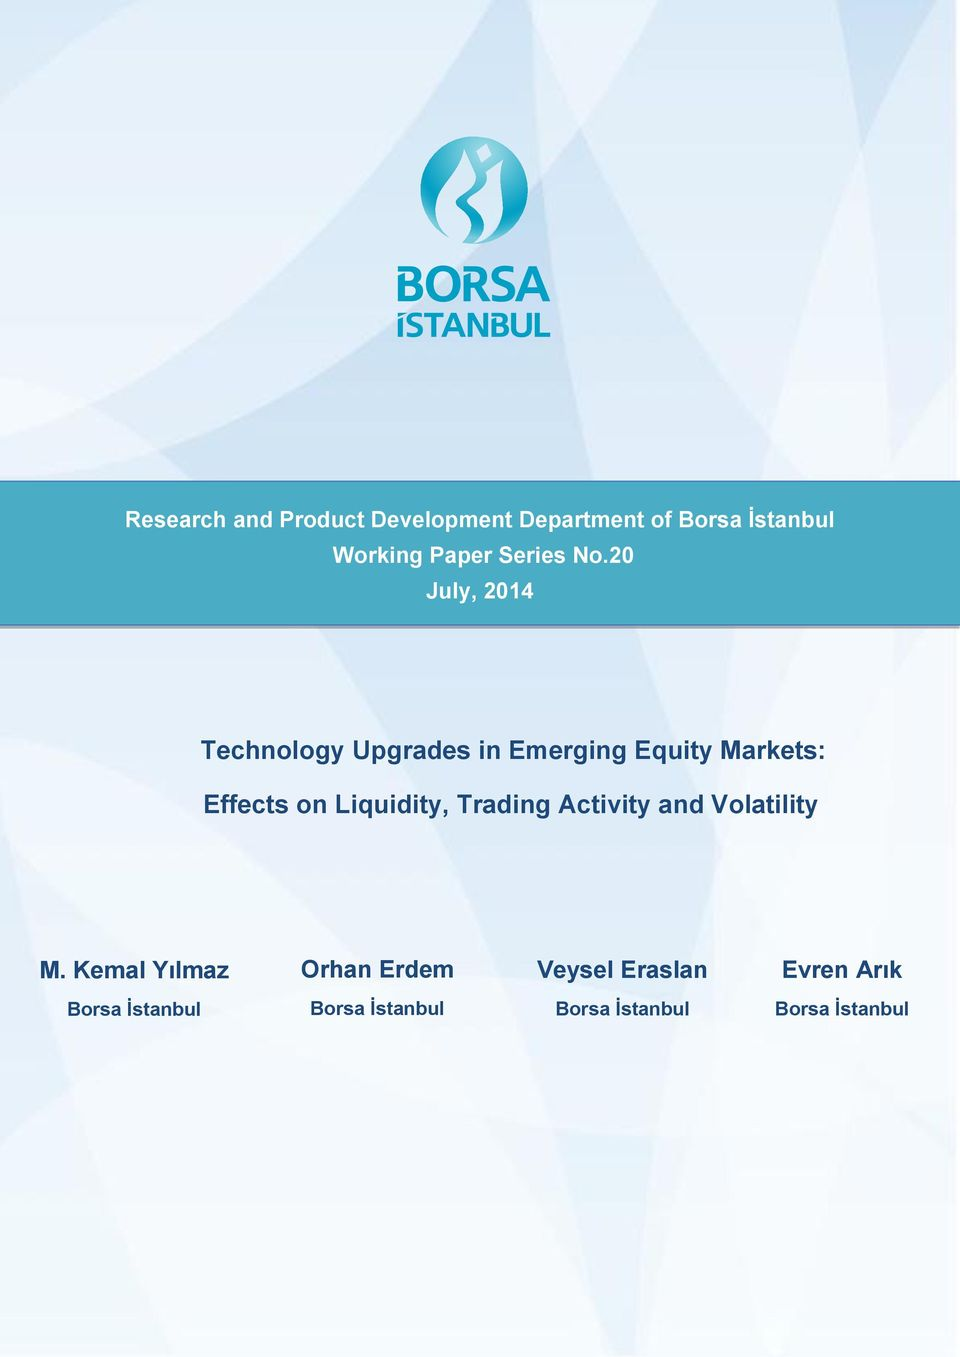 20 July, 2014 Technology Upgrades in Emerging Equity Markets: Effects on